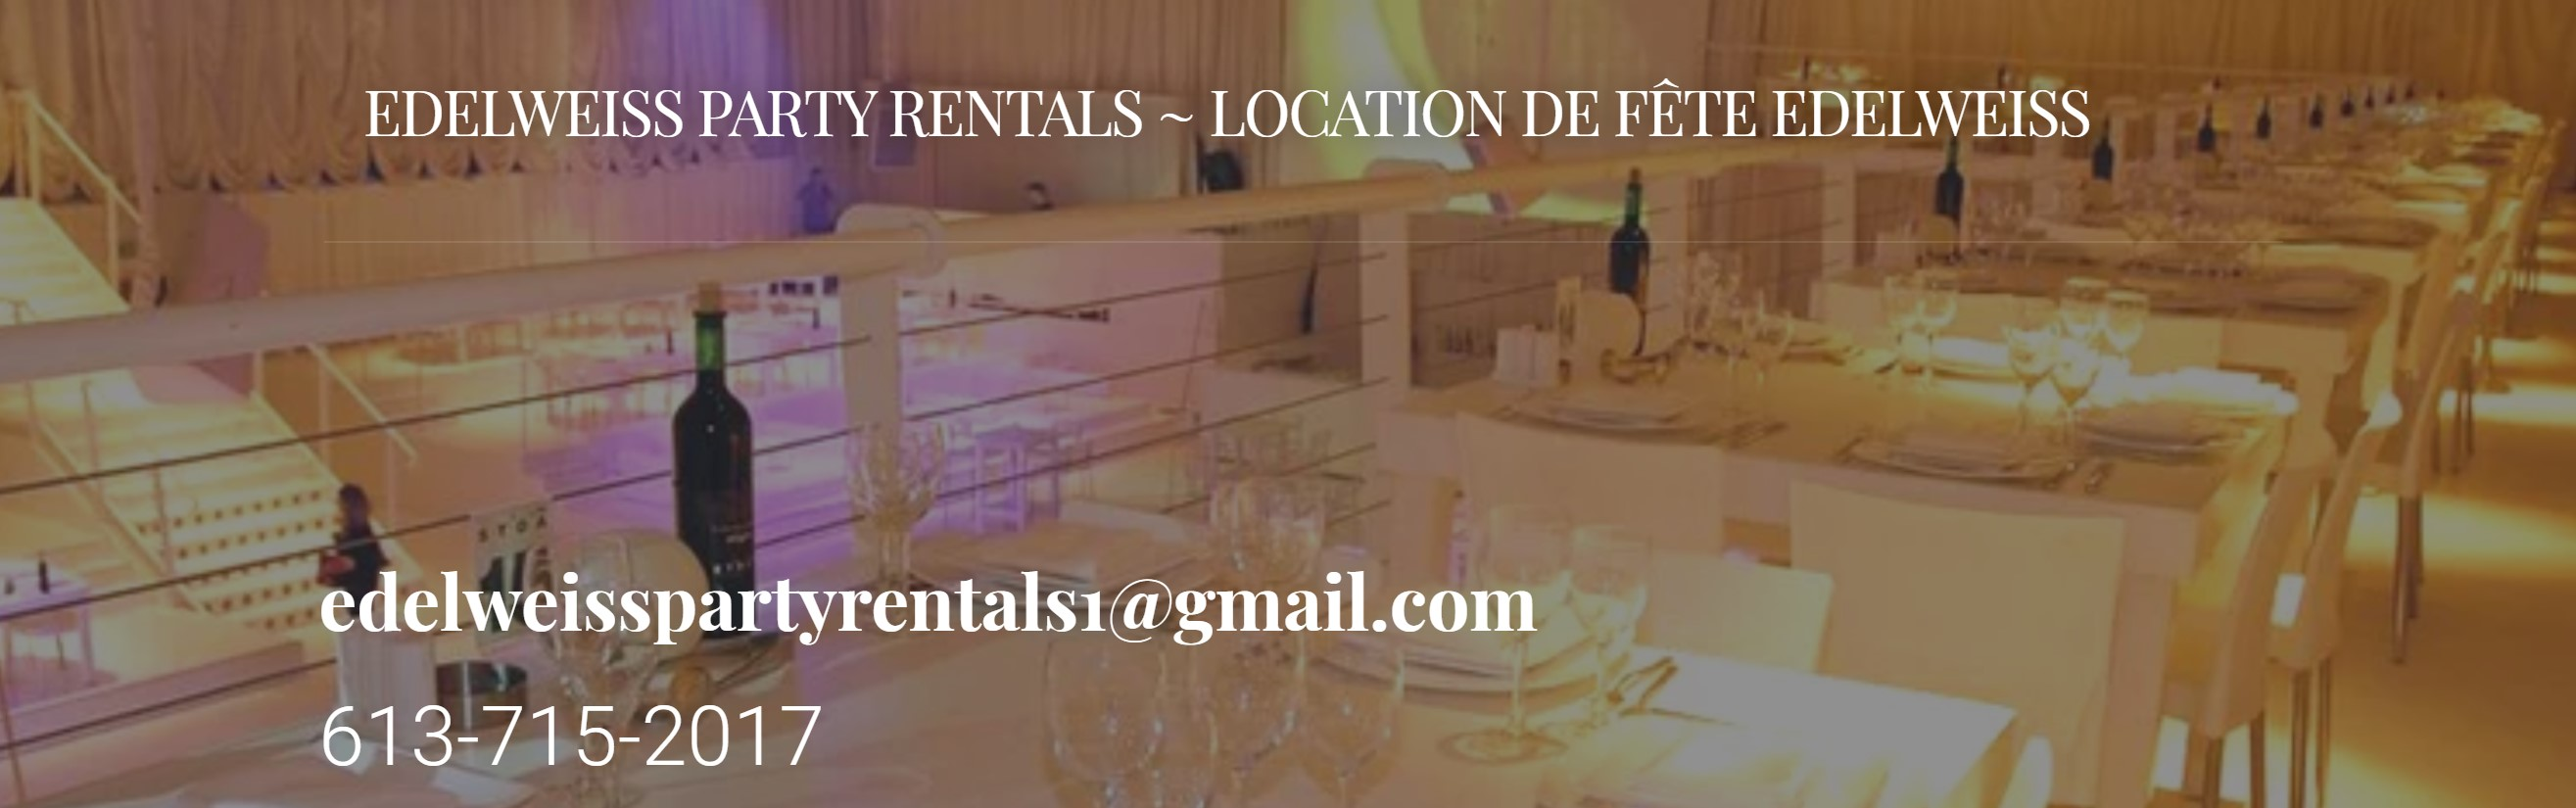 Edelweiss Party Rentals